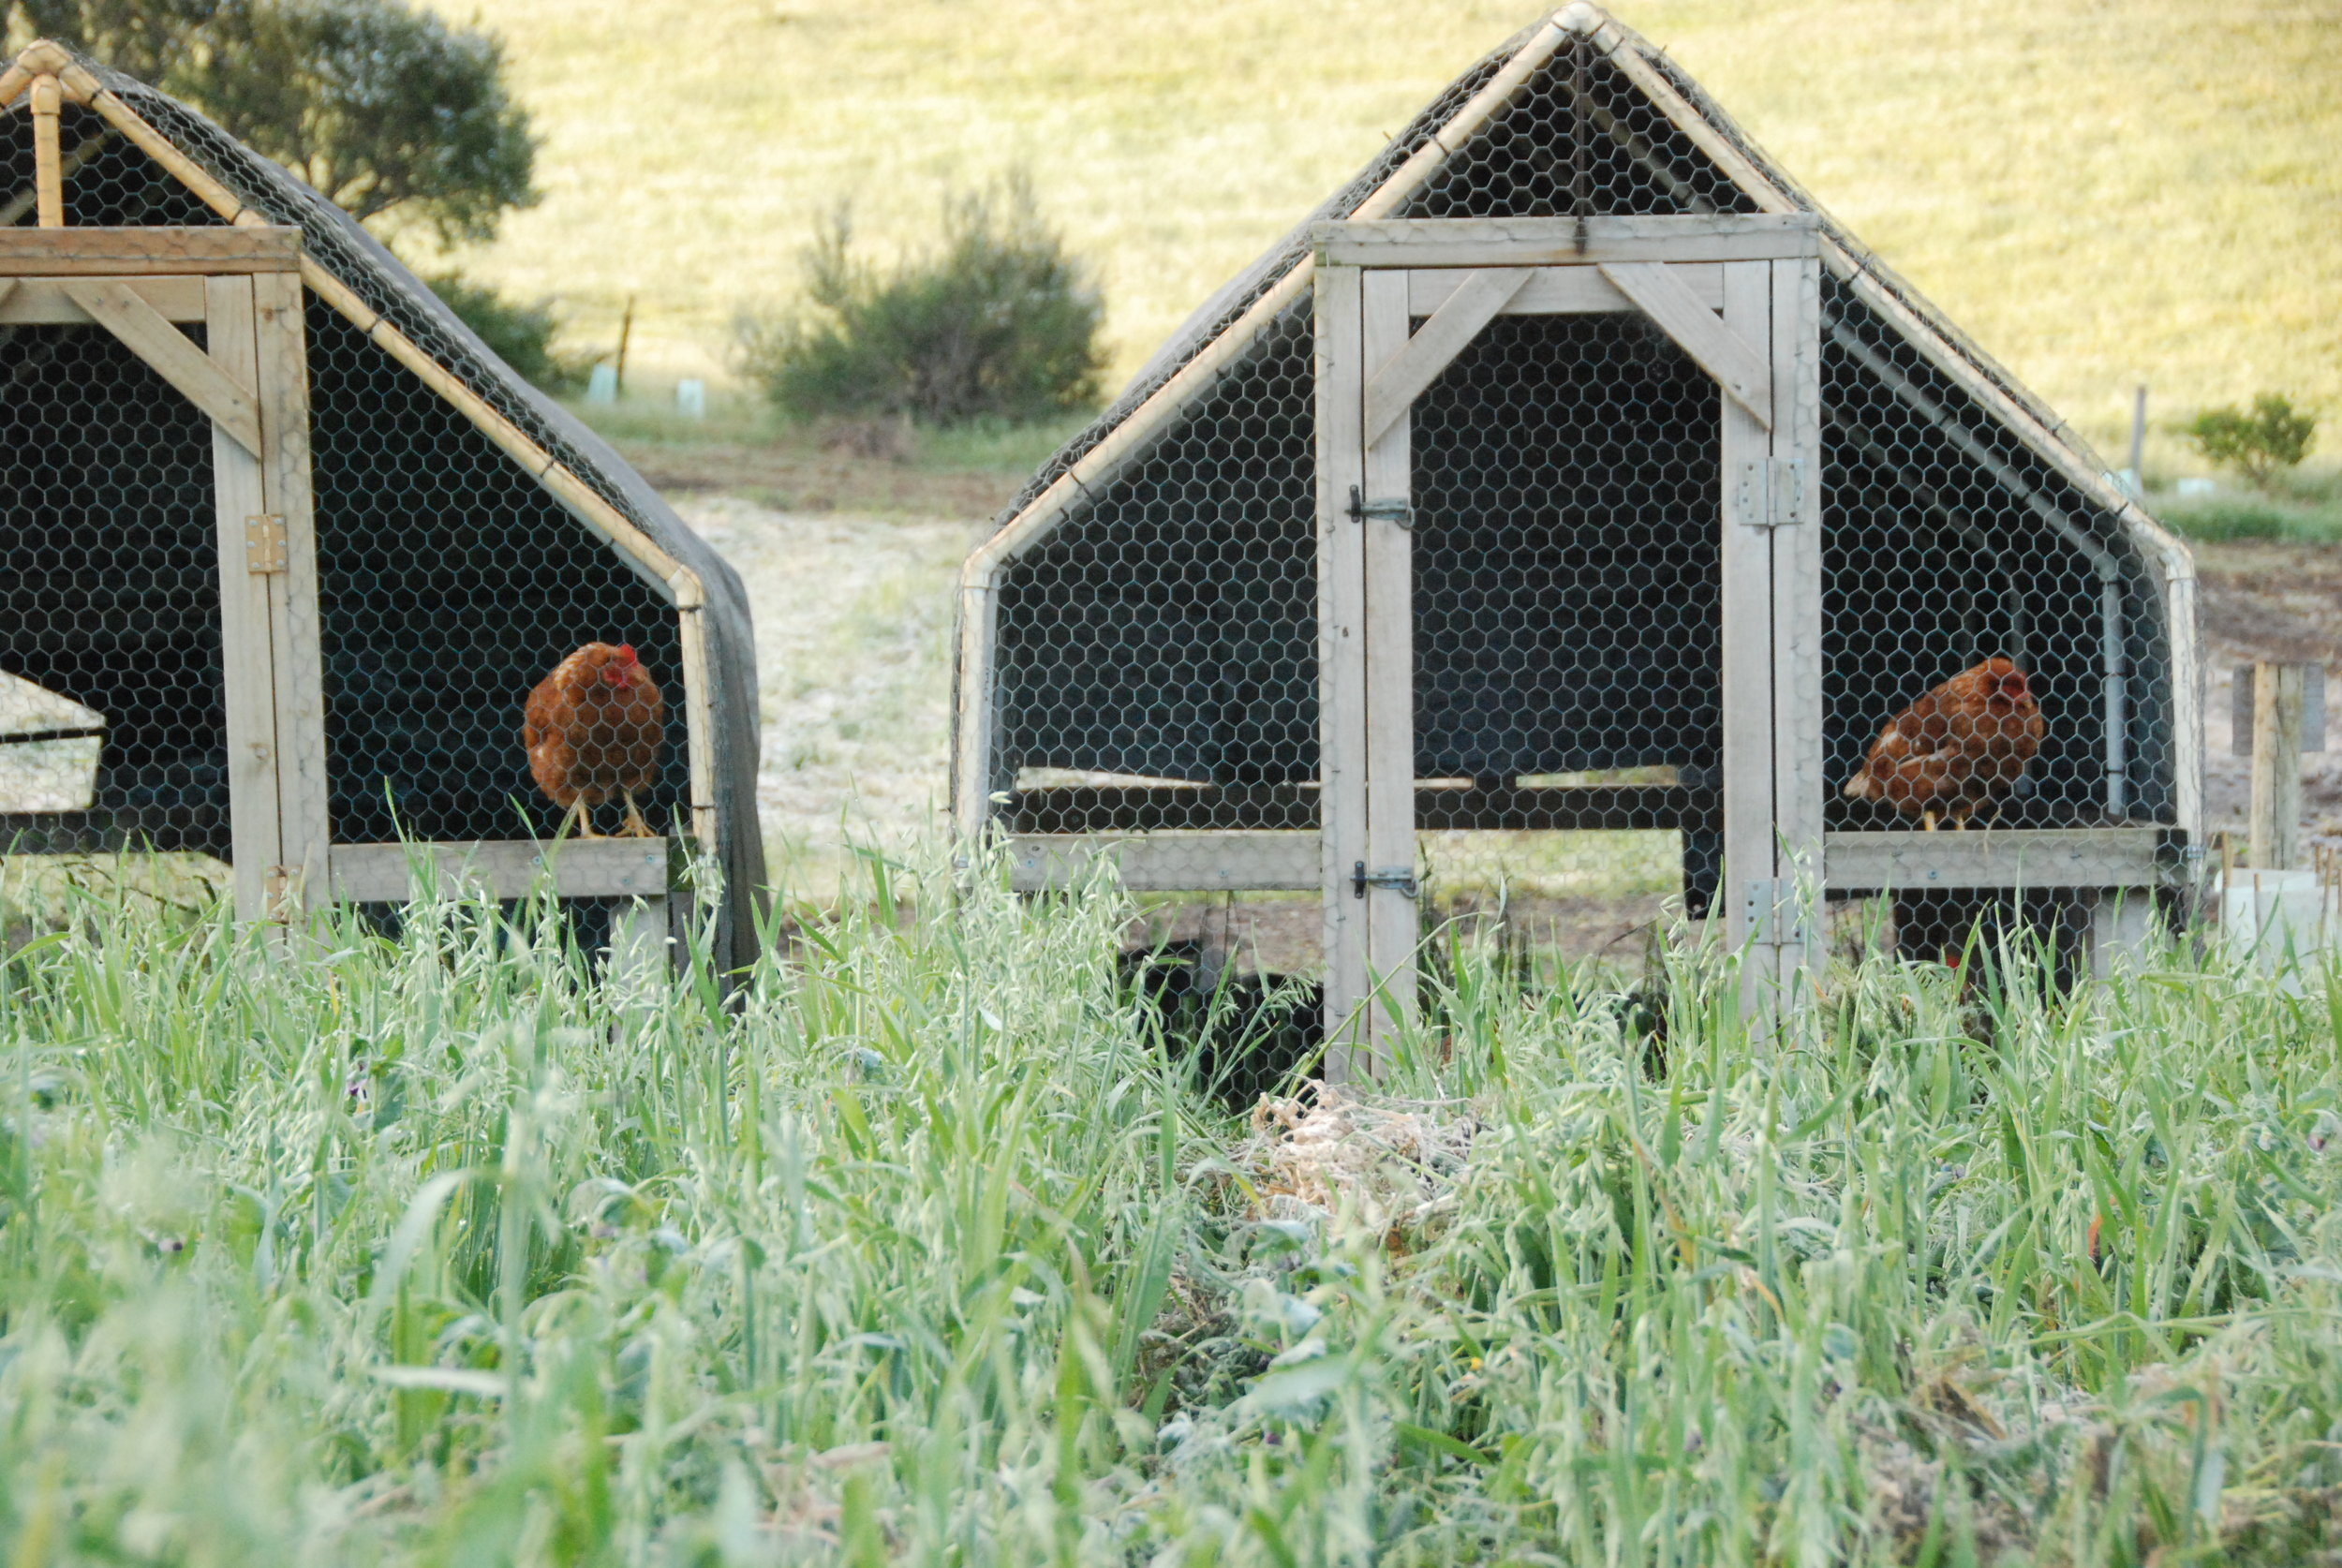 Chicken tractors working through the market garden